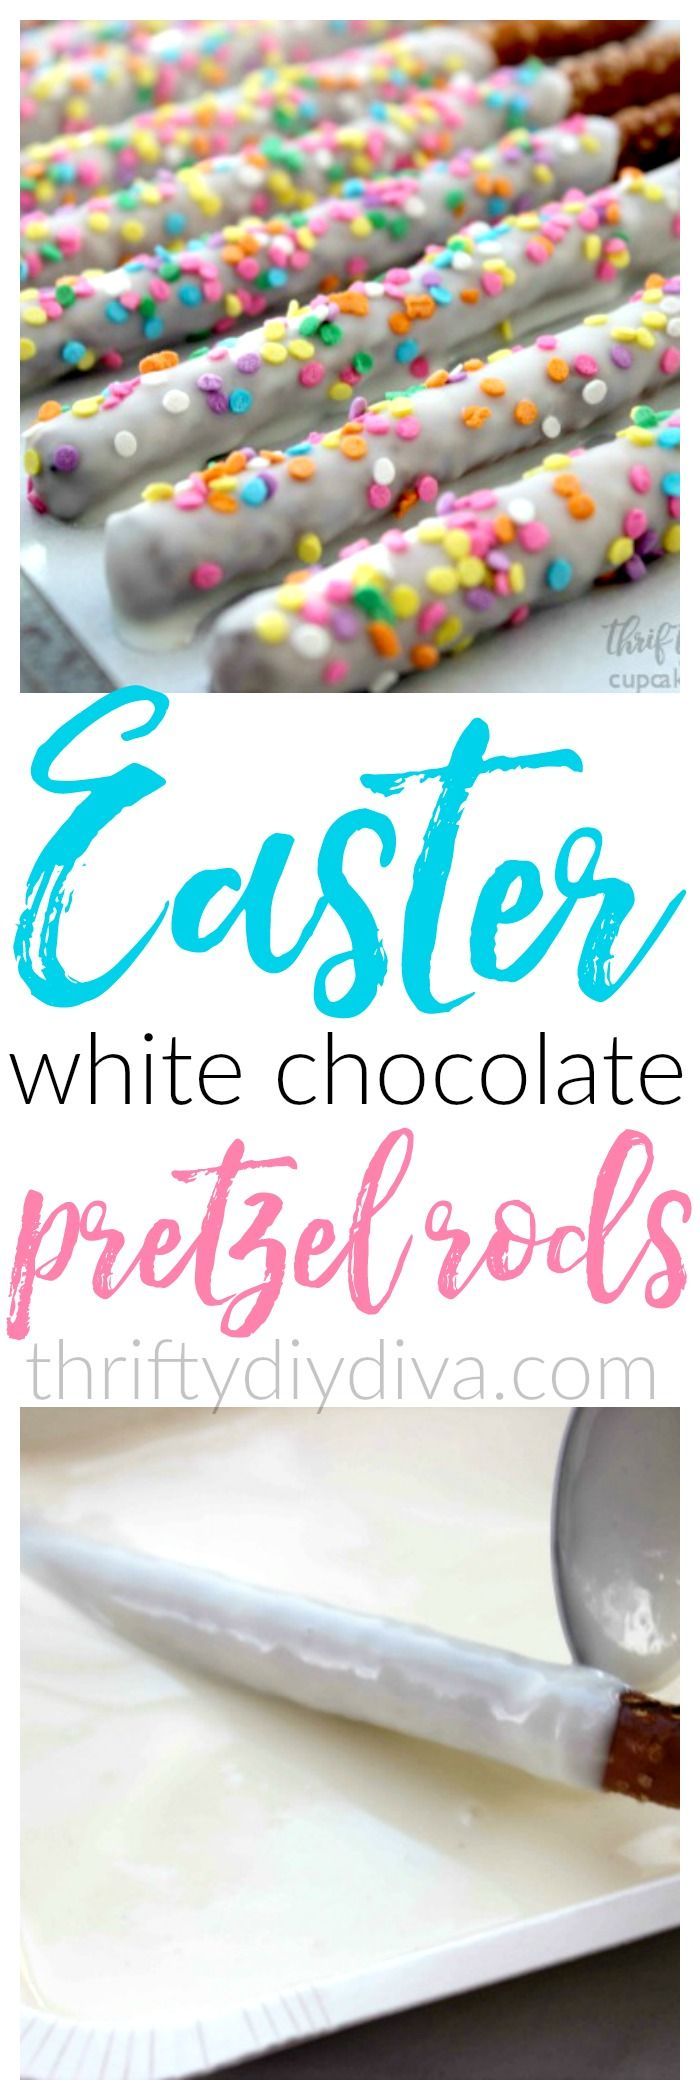 Best 25+ Chocolate pretzel rods ideas on Pinterest | Chocolate ...